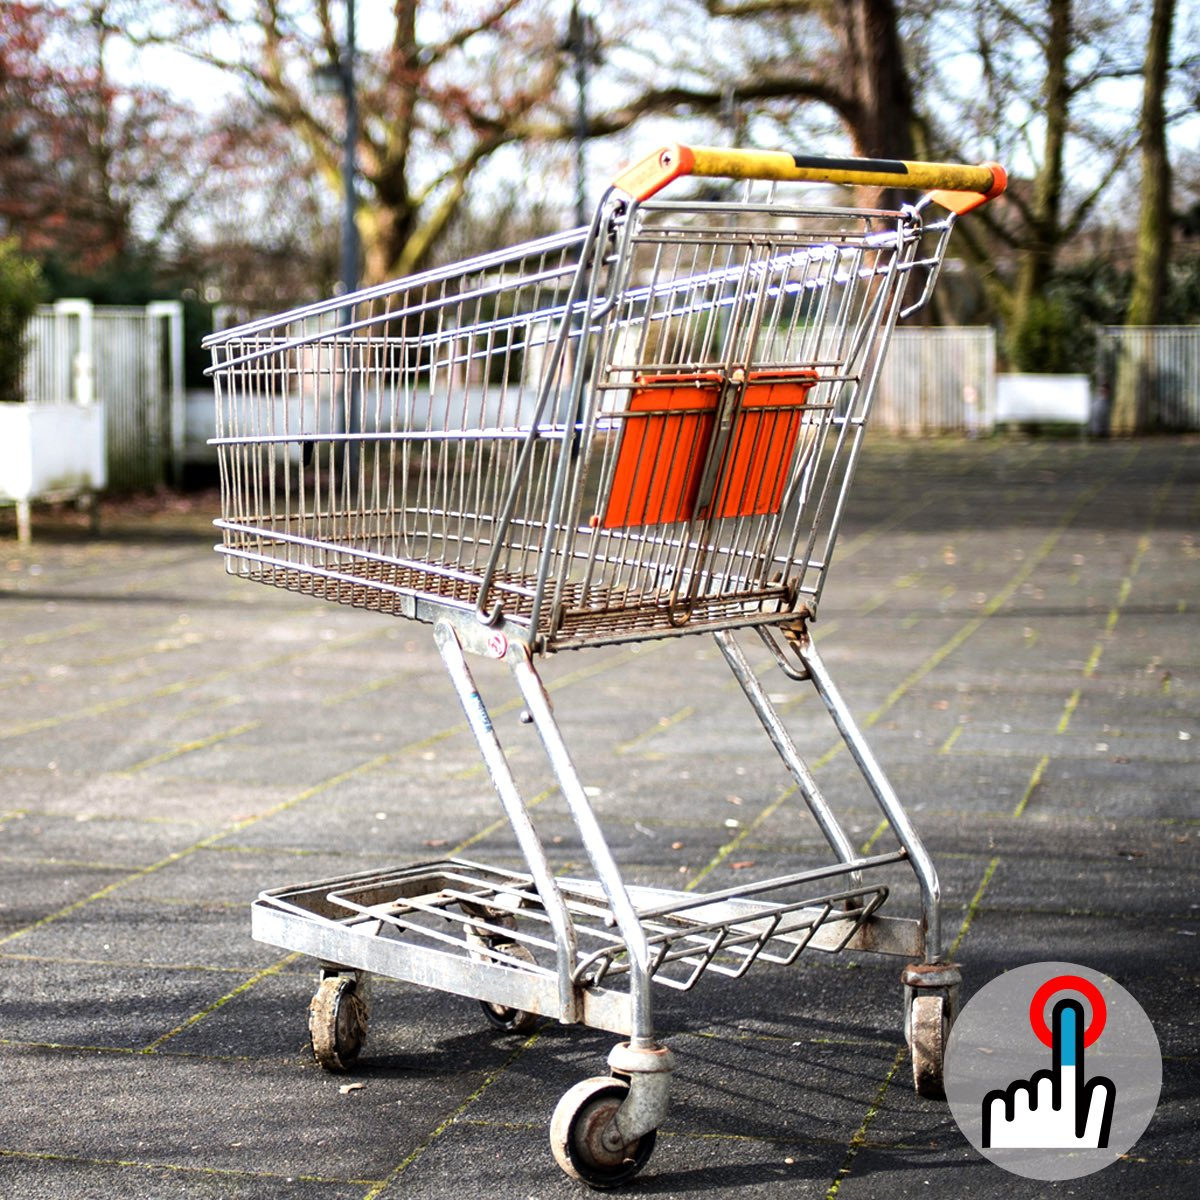 Going Grocery Shopping, WAIT you need to cover those fingers with @touchitsafe You are touching buggies, boxes, door handles fruits and vegetables so #getcovered  PURCHASE NOW http://Touch-it-Safe.com #touchitsafe #canttouchthis #rubber #covid19 #coronavirus #virus #momhack #germpic.twitter.com/LAwucBxoD6